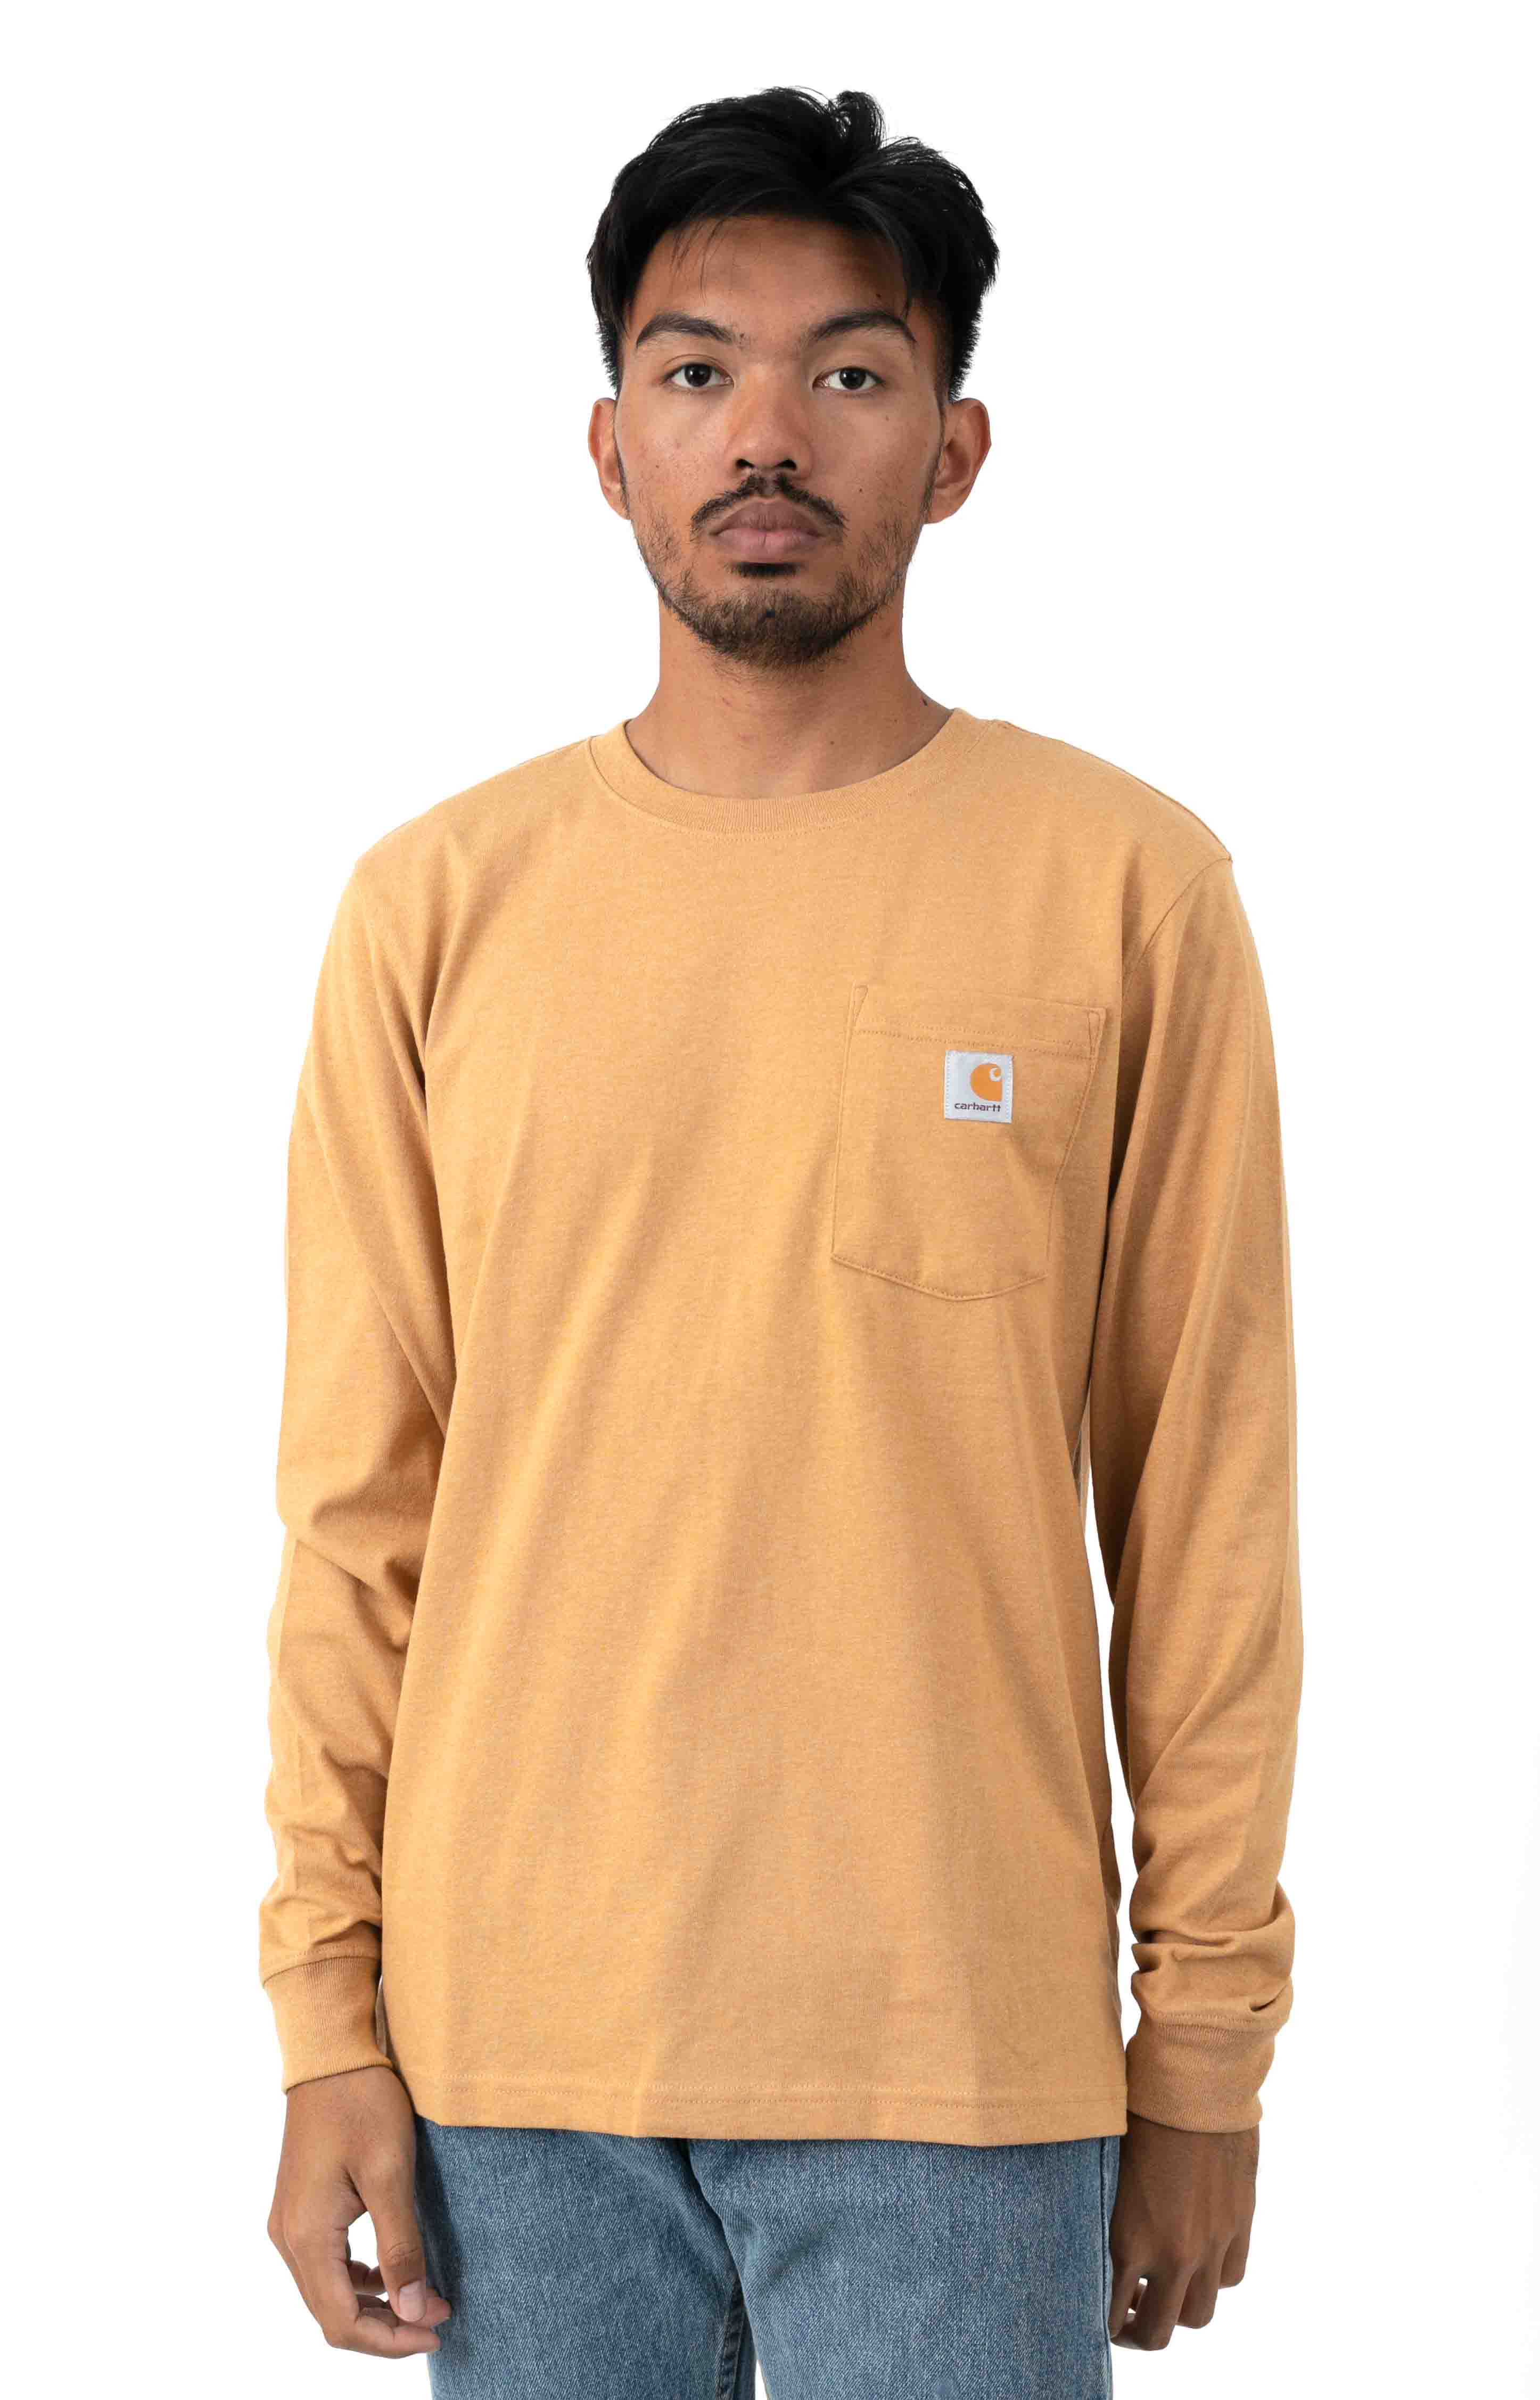 (104434) Relaxed Fit HW L/S Pocket Logo Graphic Shirt - Yellowstone Heather